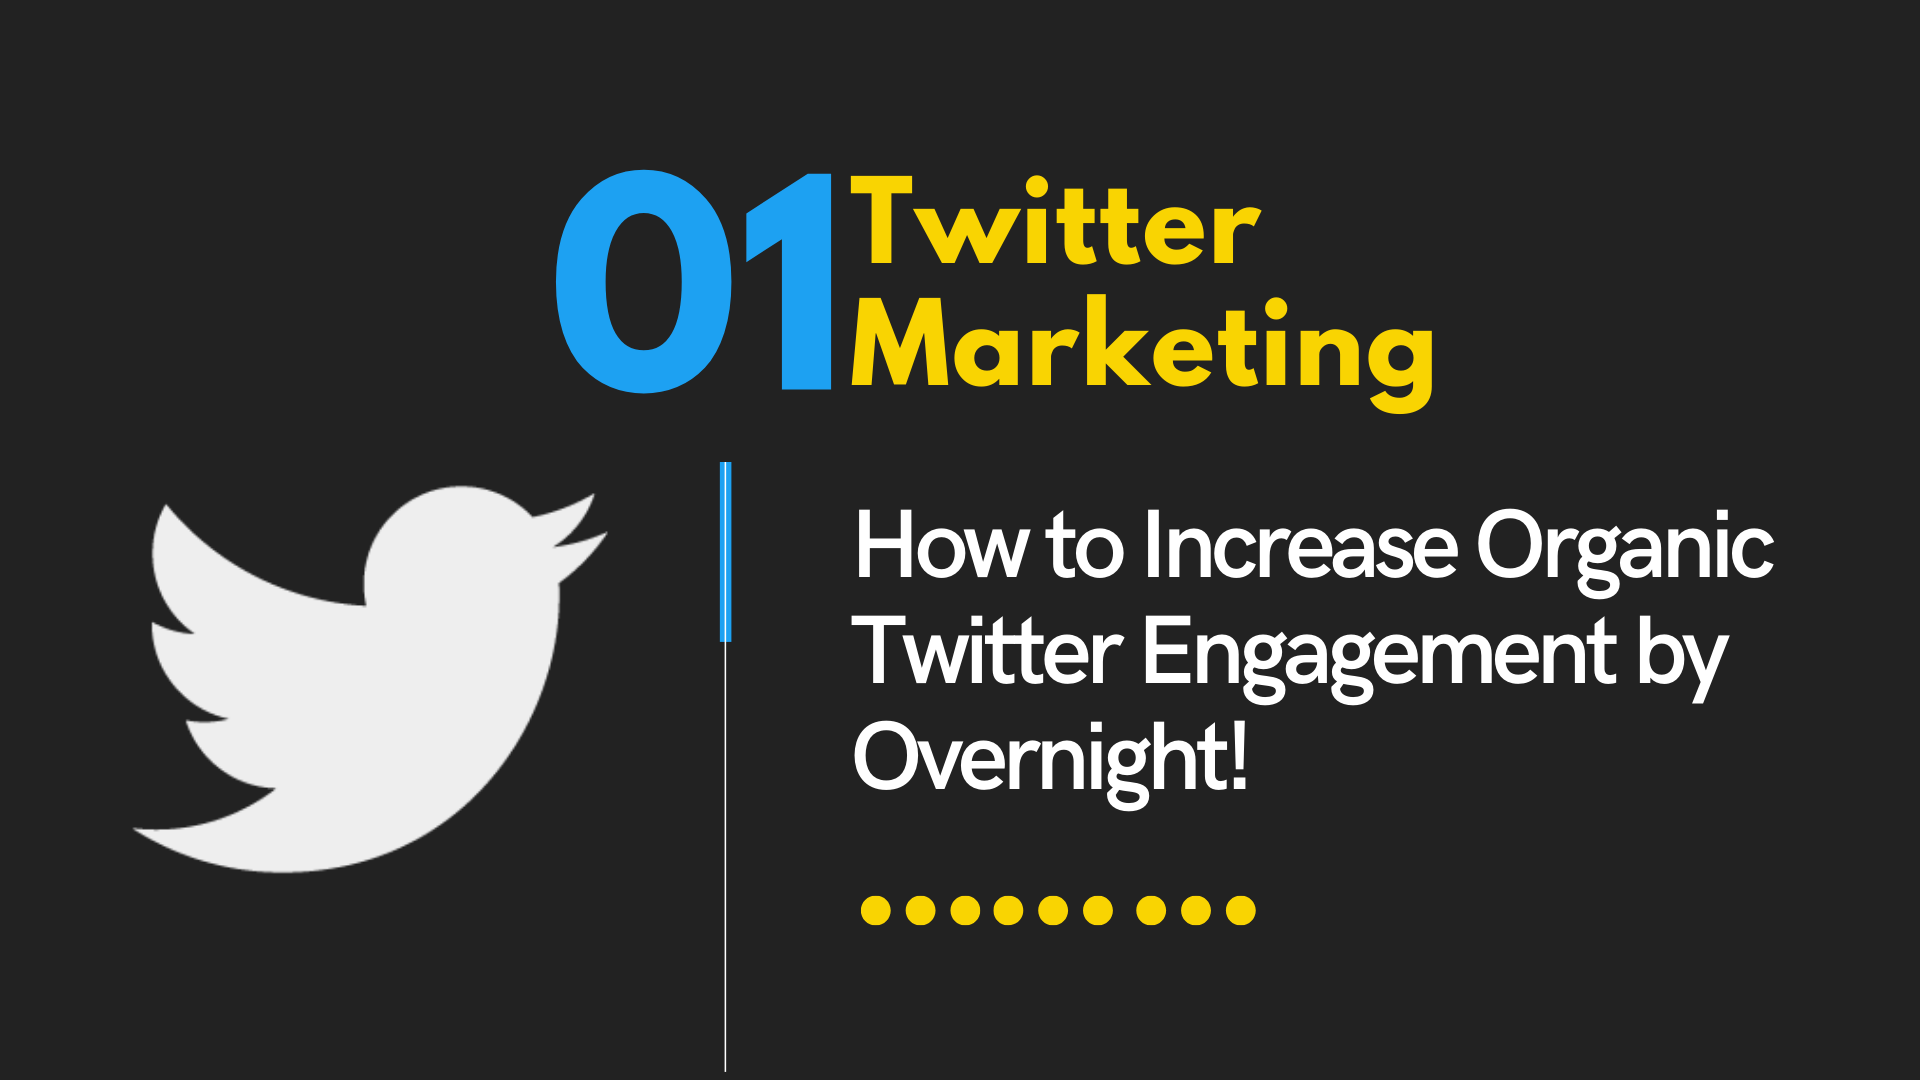 How to Increase Organic Twitter Engagement